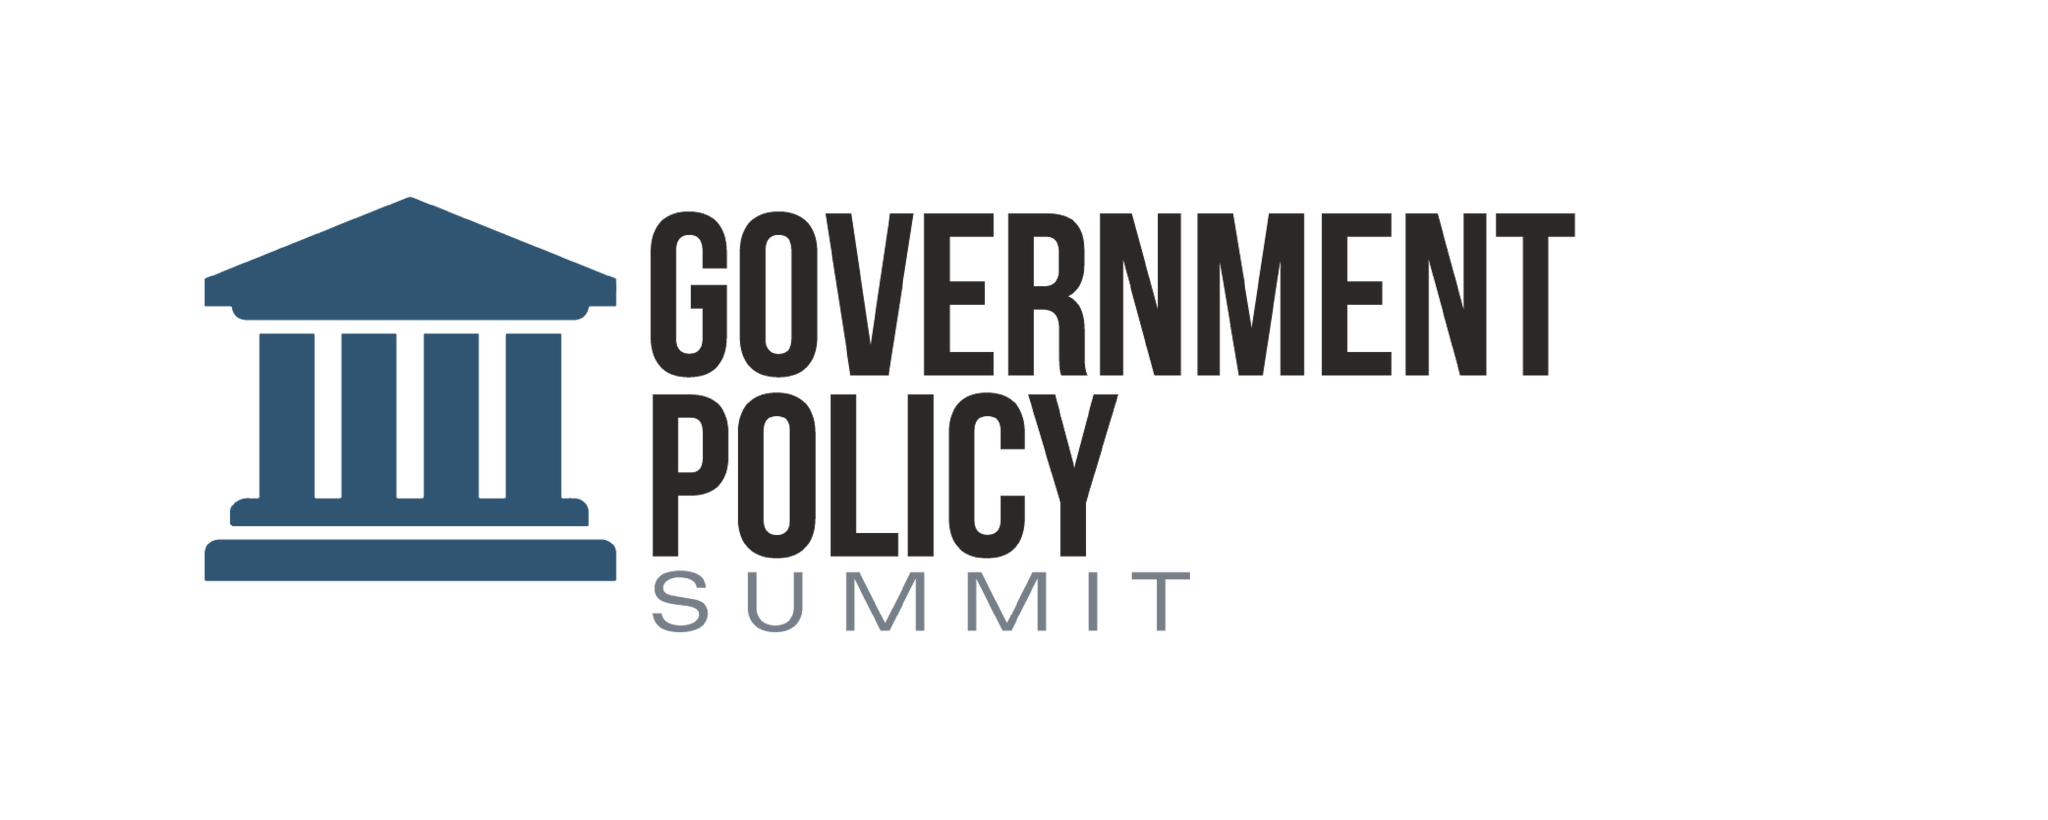 GOVERNMENT POLICY SUMMIT